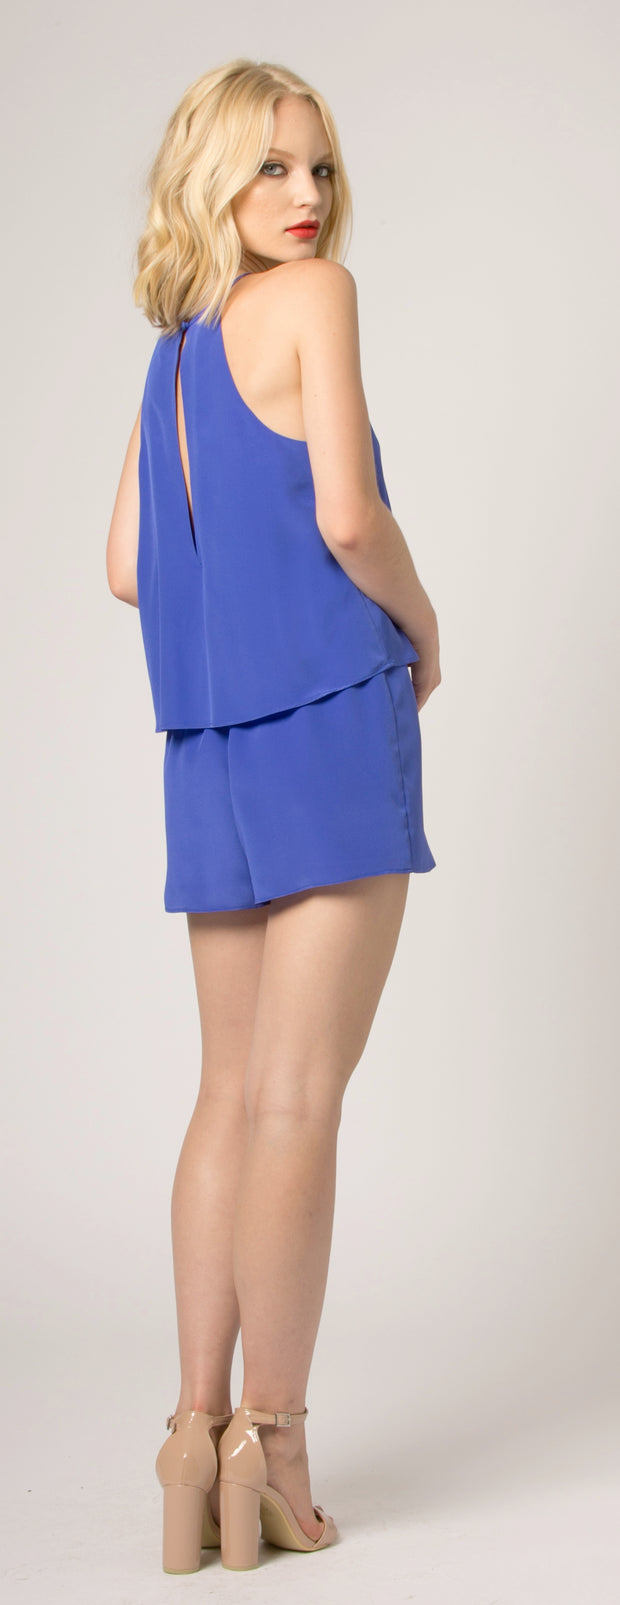 Turin Blue Overlay Jewel Neck Silk Romper by Lavender Brown 002